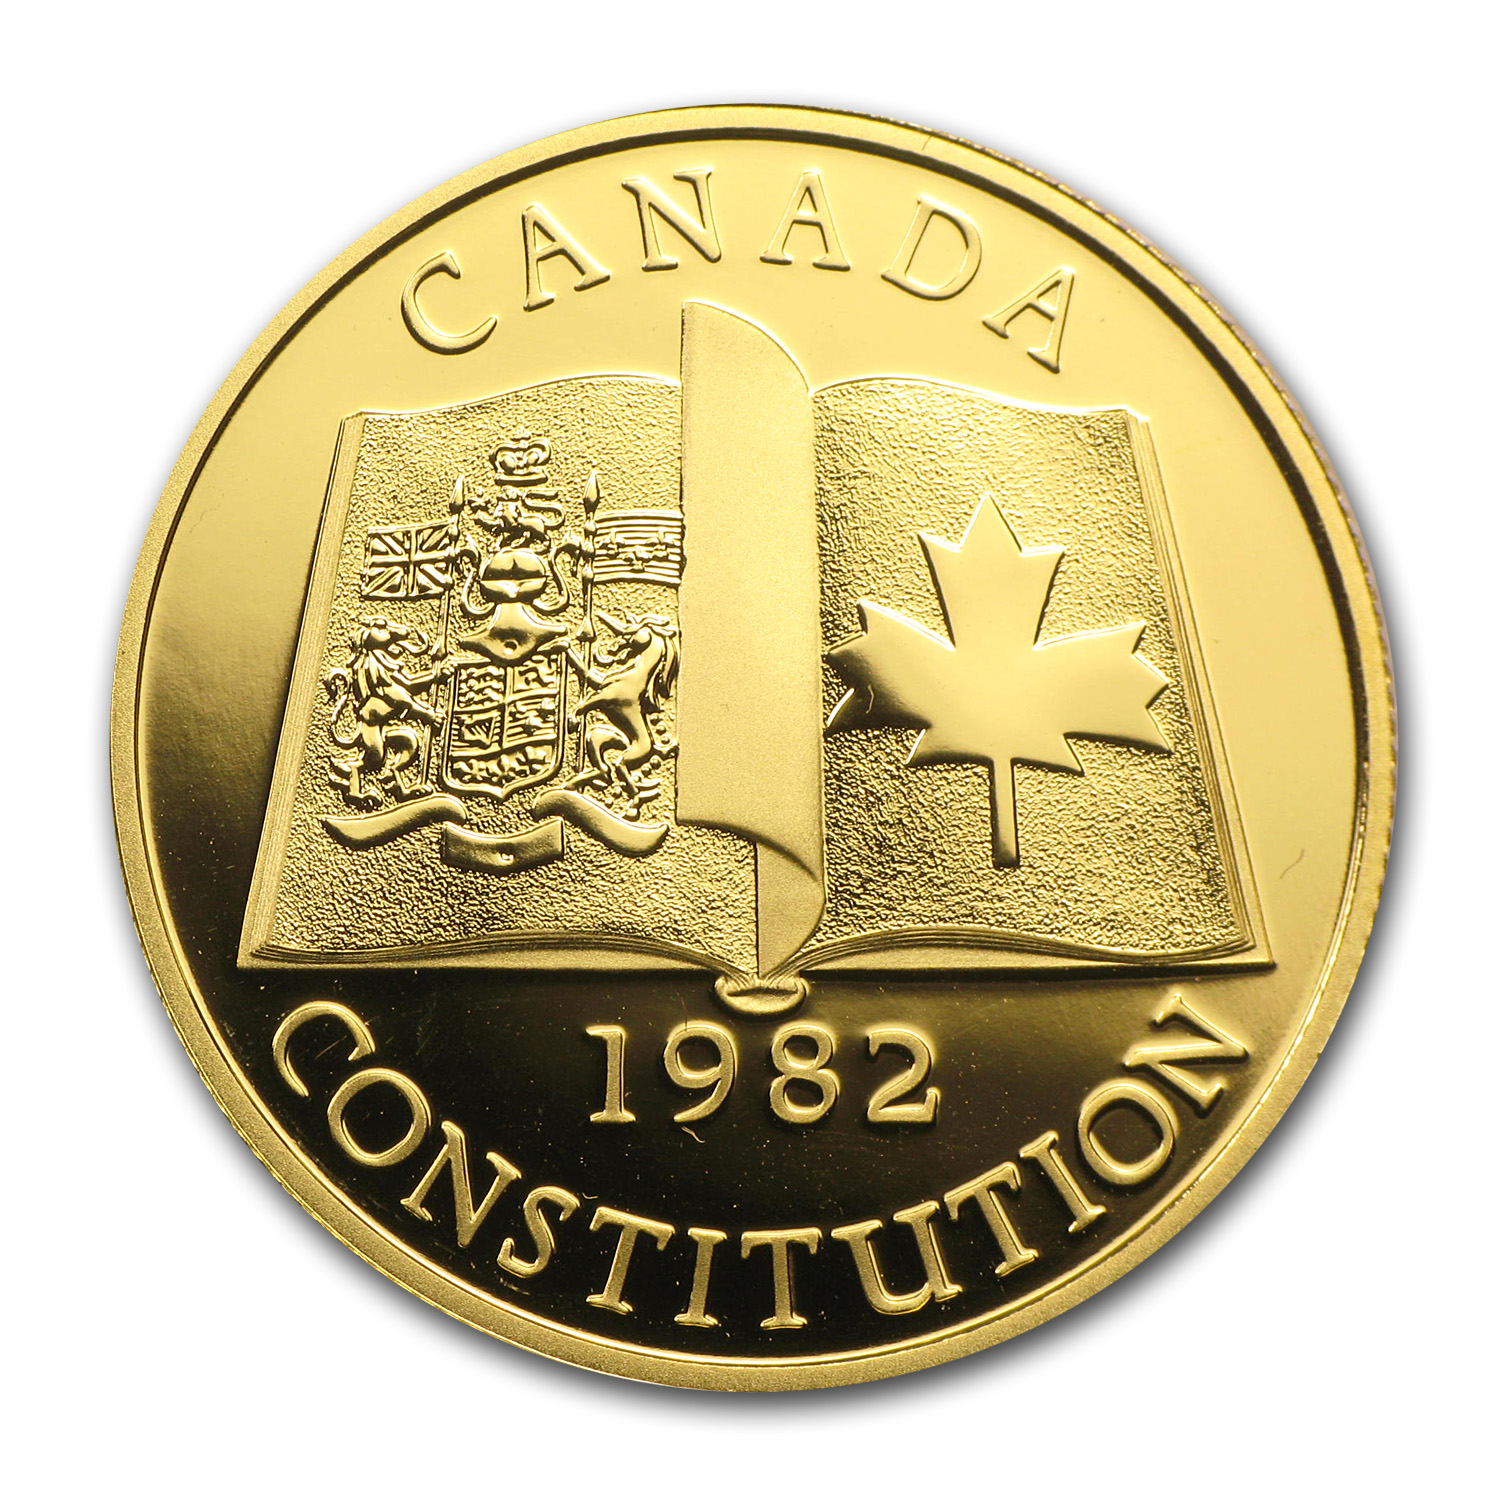 Canada 1982 $100 1/2 oz Gold Proof - Constitution